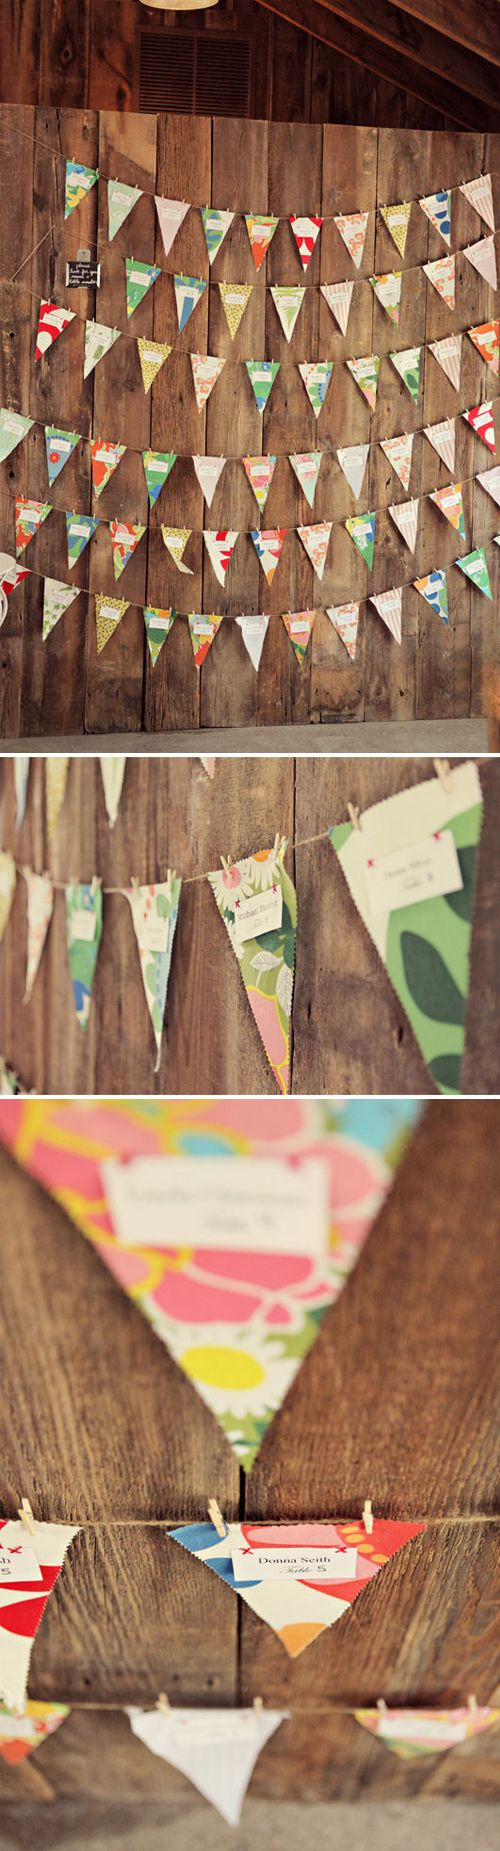 pennants. I was thinking people could write their wishes on the blank spots, so I could hang them each year on my wedding day...